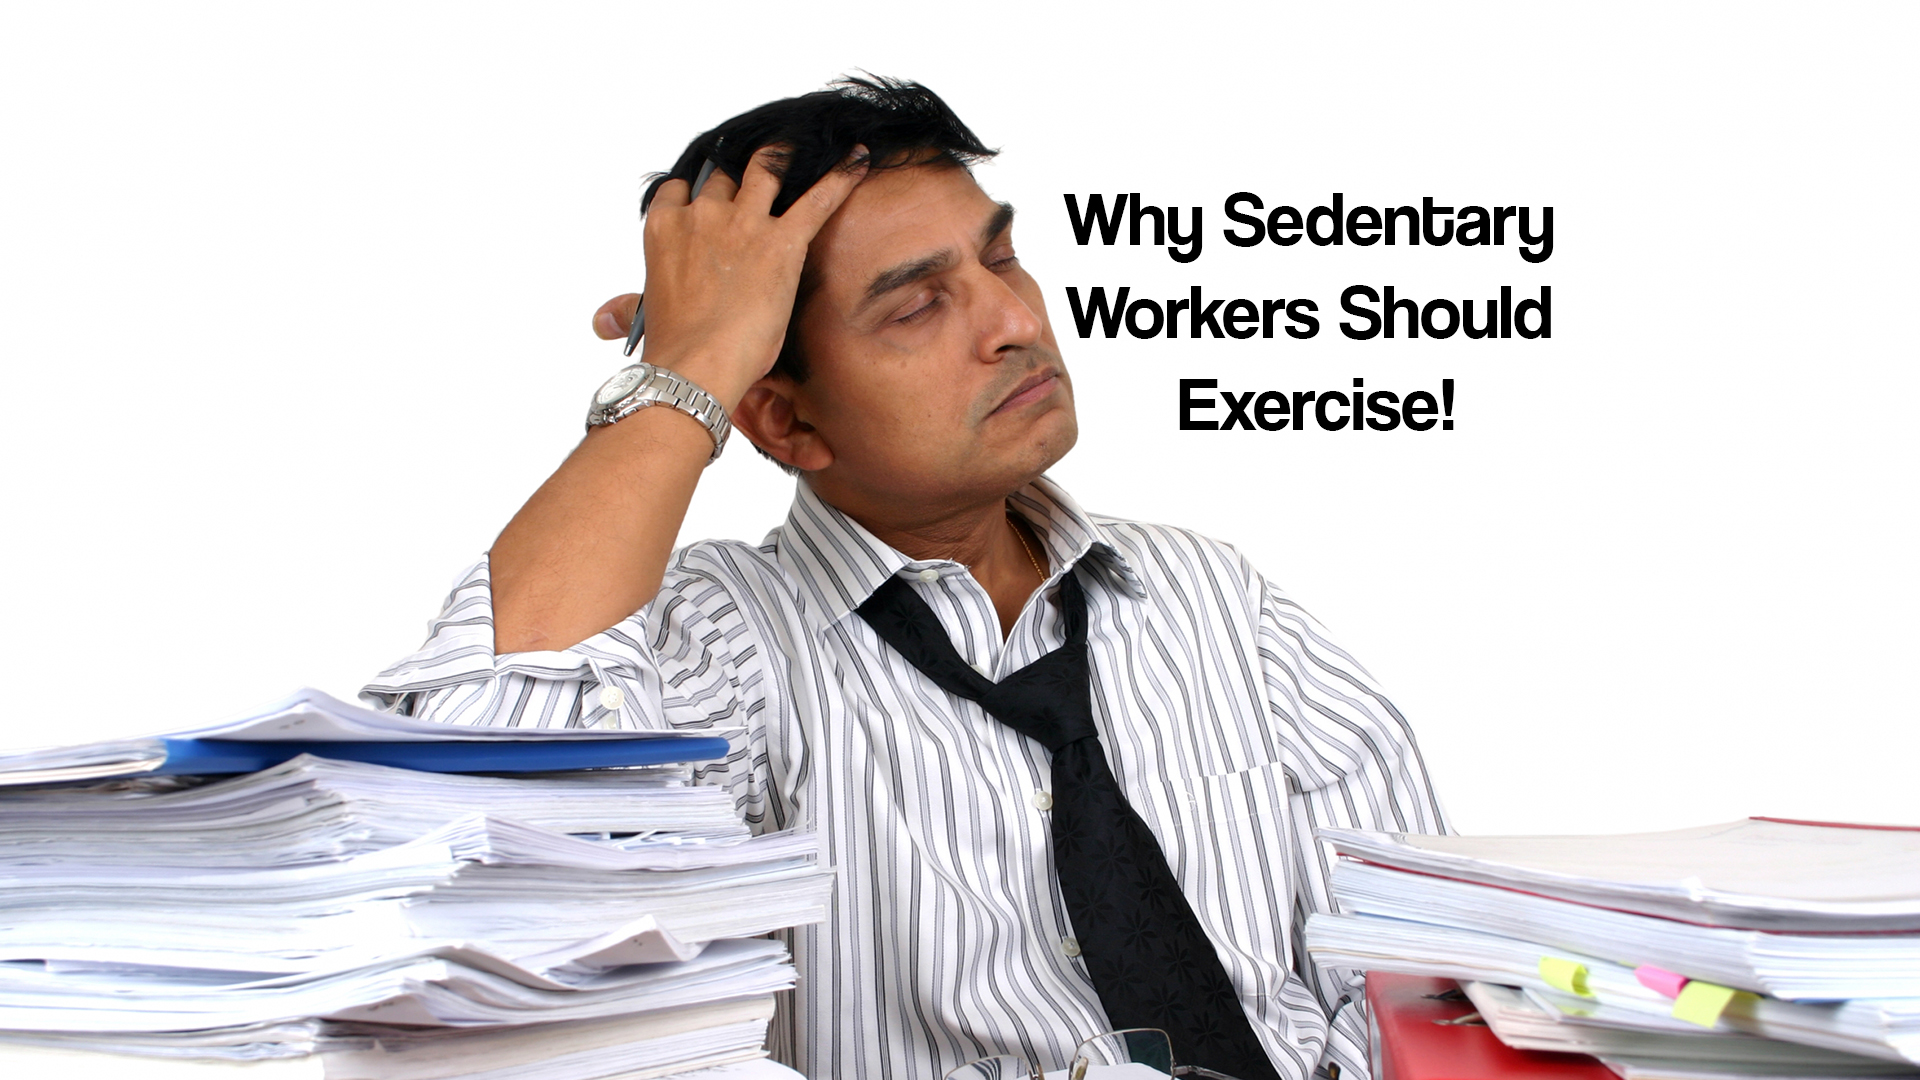 Why Sedentary Workers Should Exercise